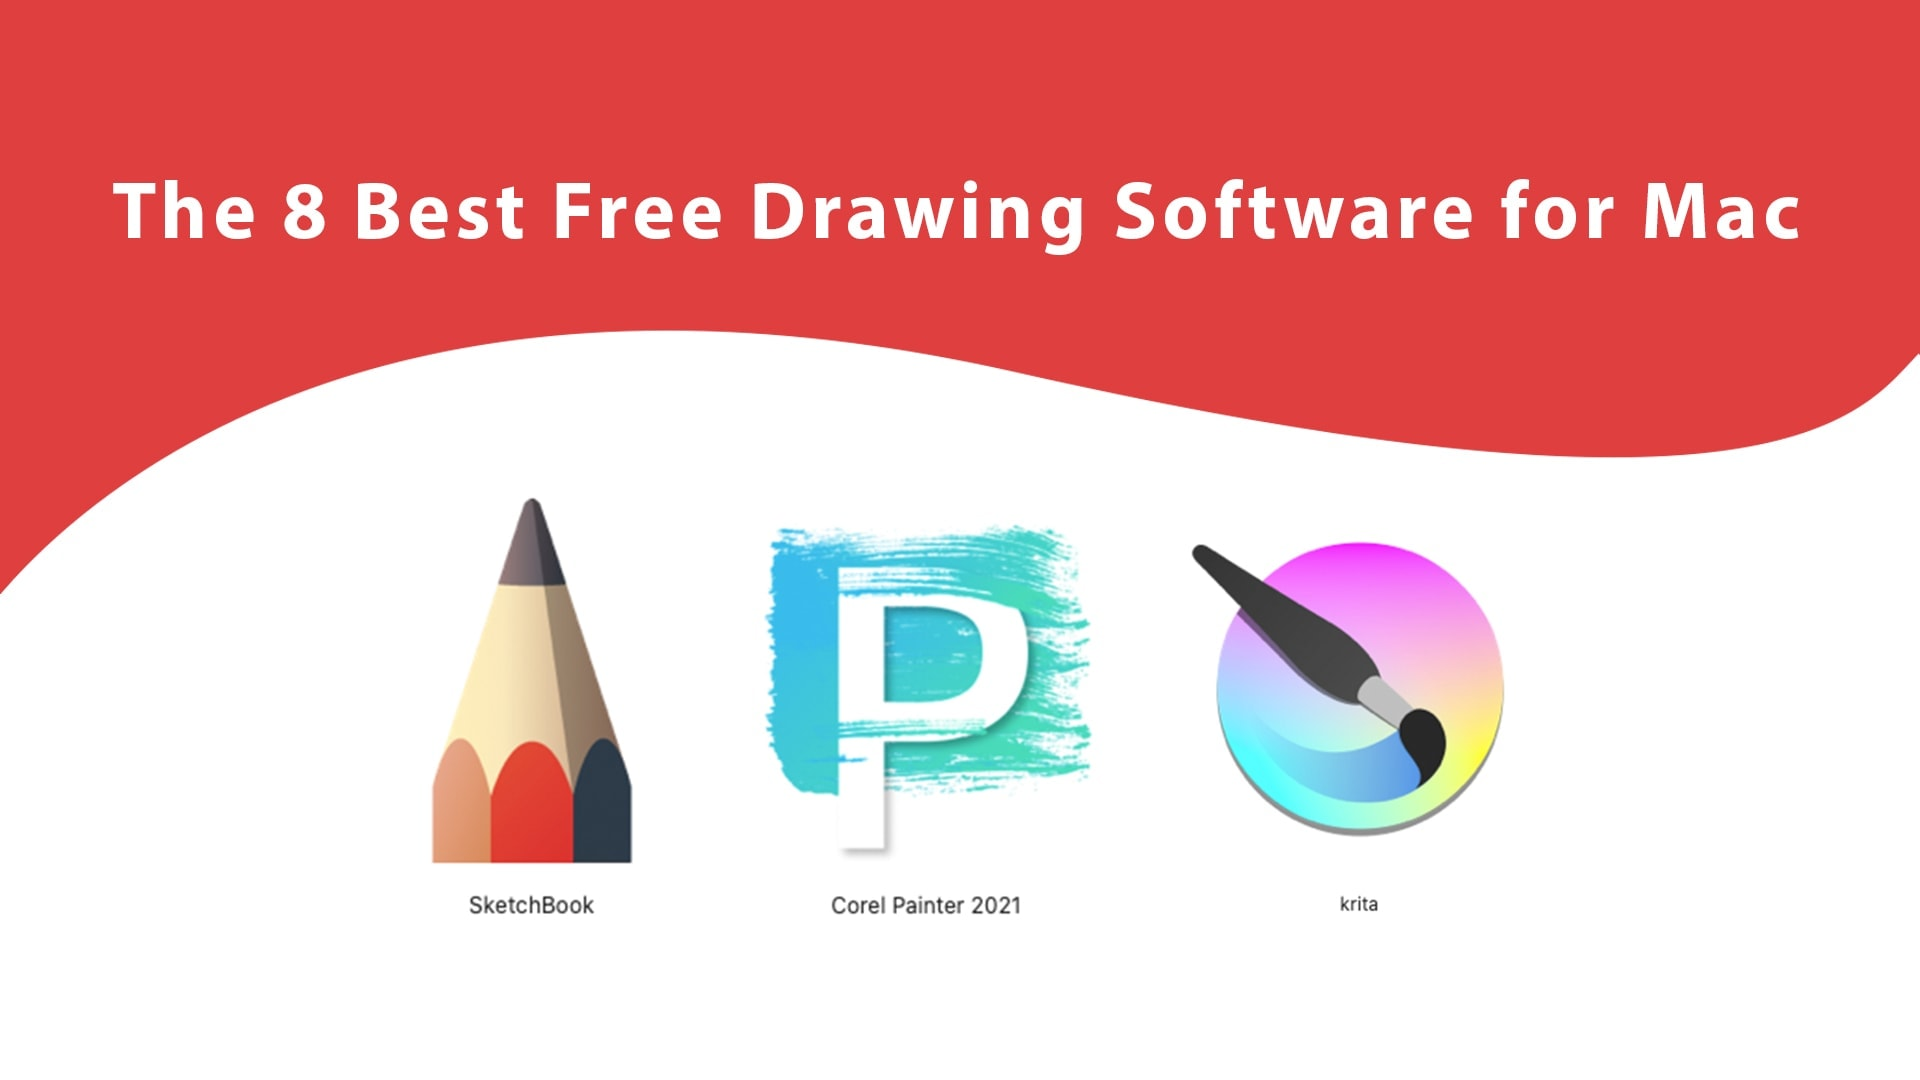 The 8 Best Free Drawing Software for Mac